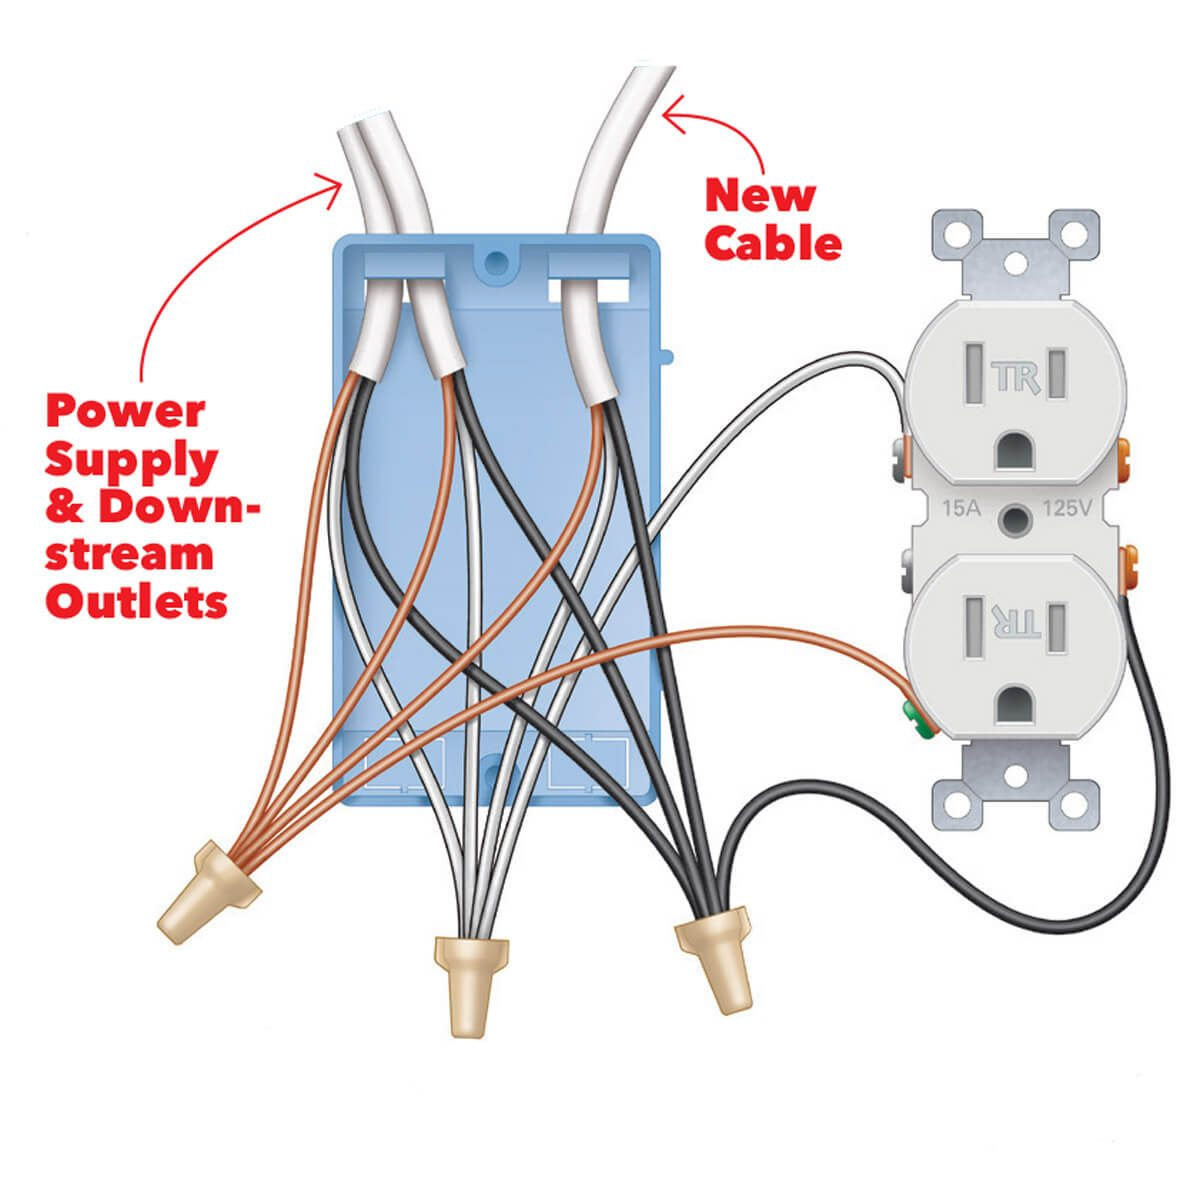 Wiring A Usb Receptacle Getting Ready With Diagram Up Plug Sockets Install Super Easy Outlet The Family Handyman Rh Familyhandyman Com Socket Micro